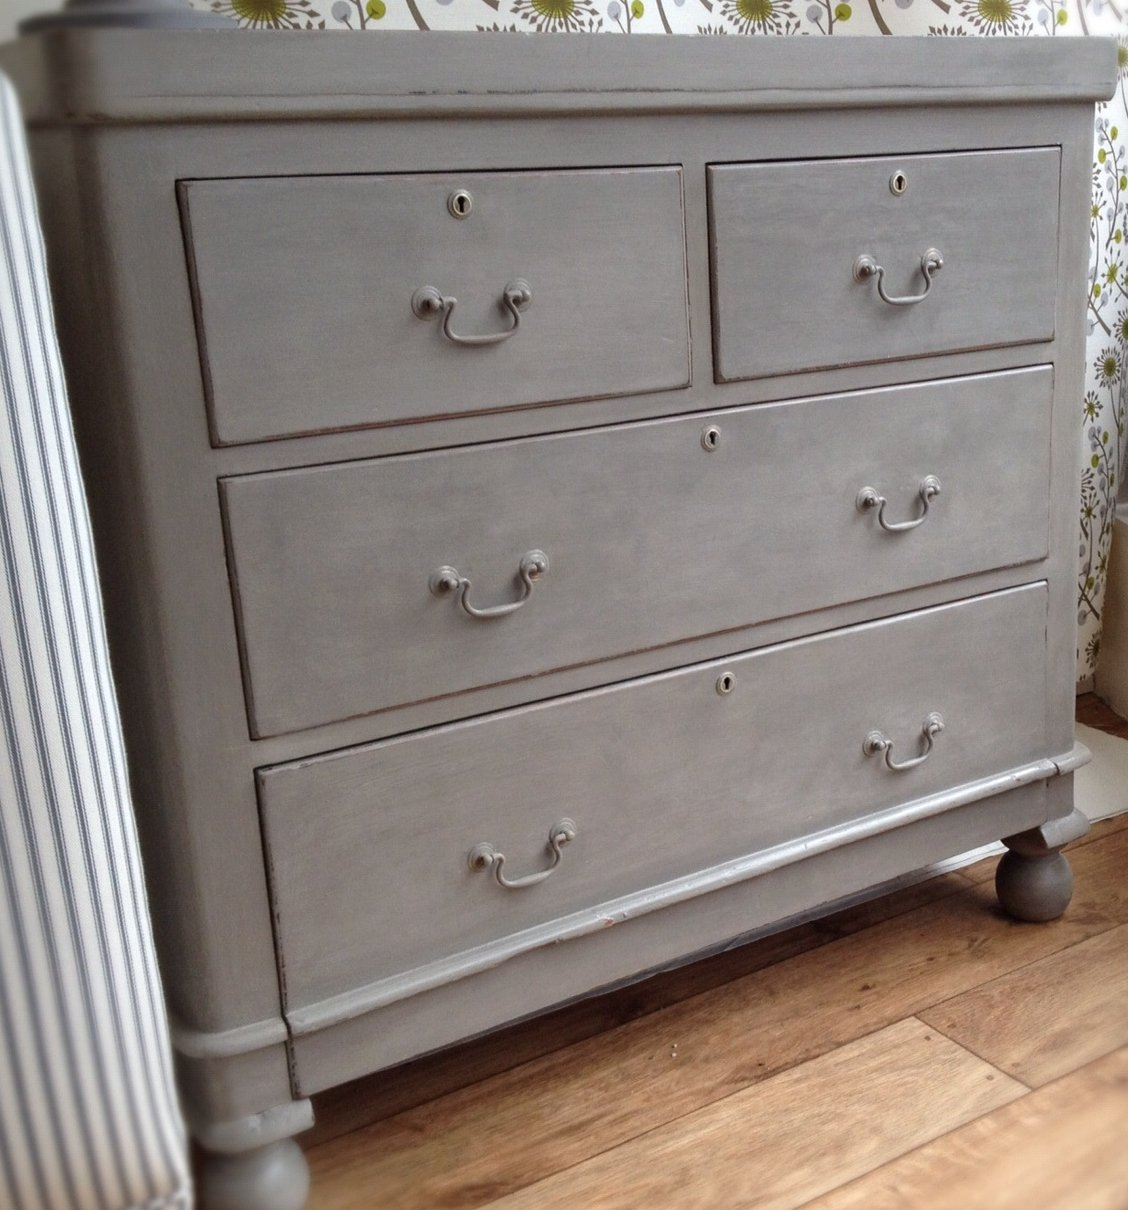 Buy this lovely chest of drawers right now online